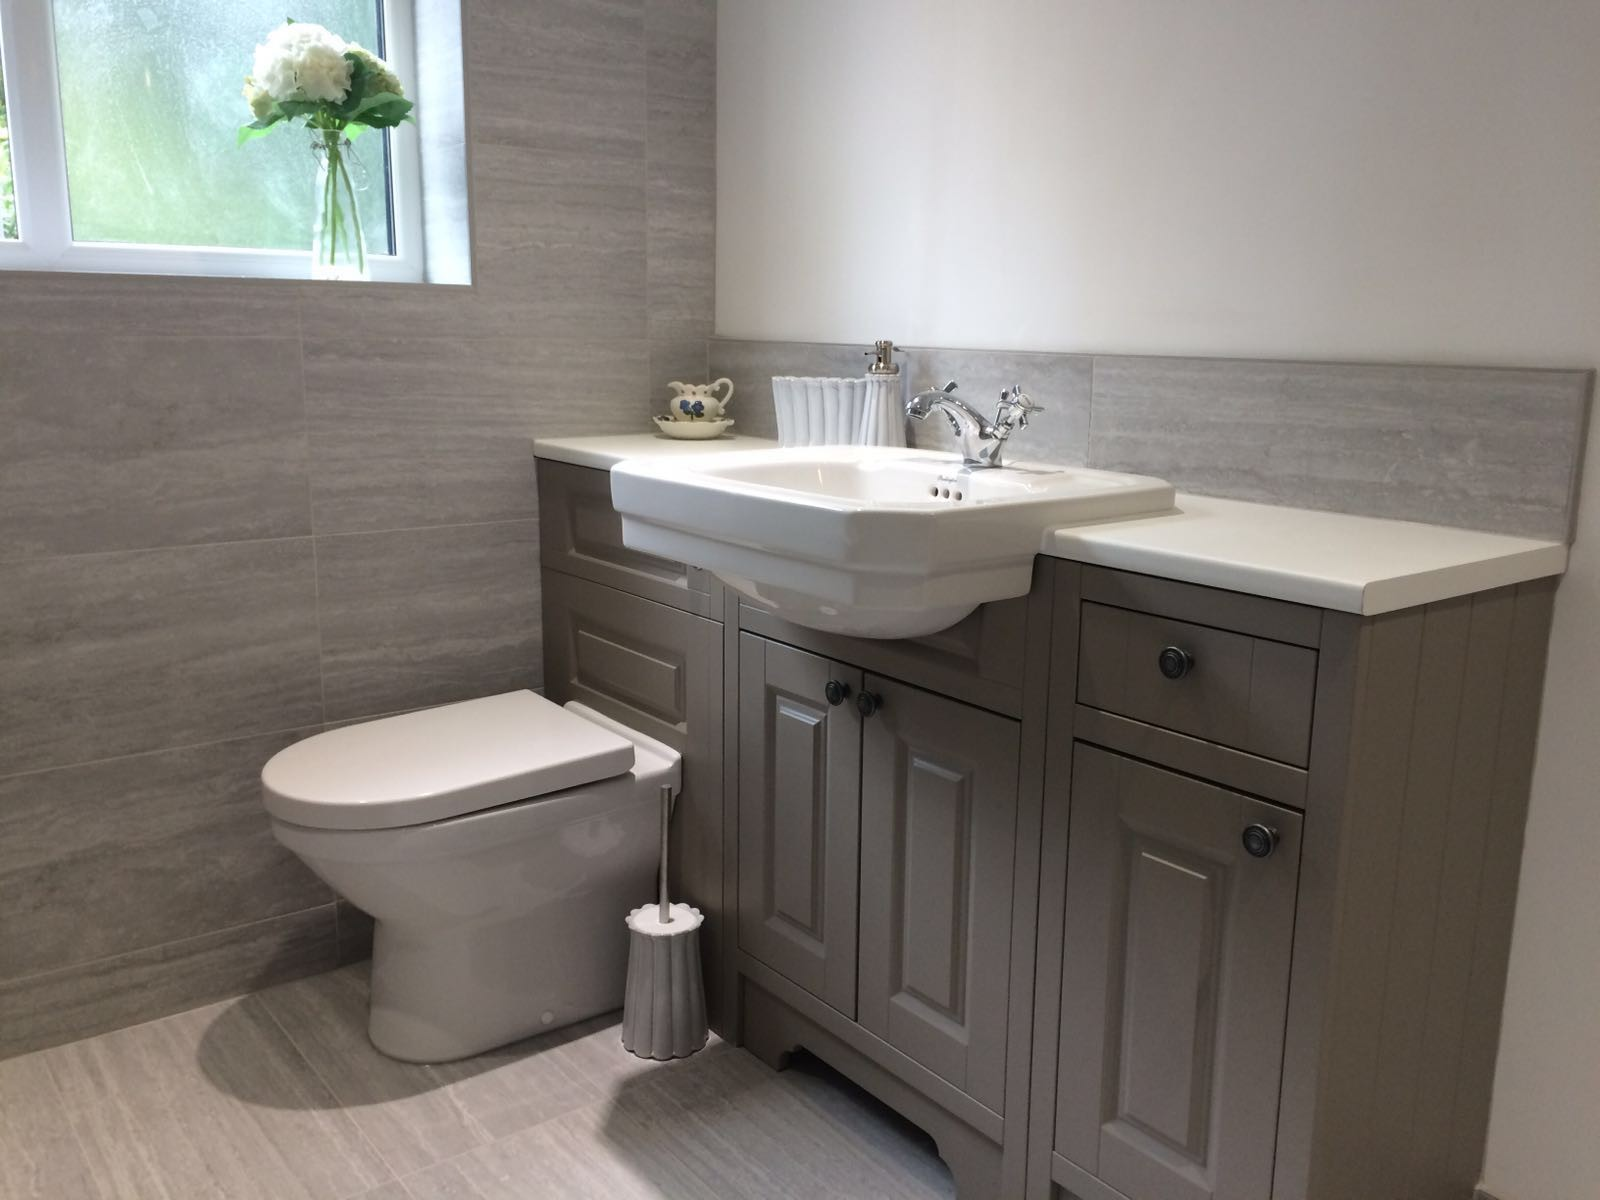 Luxury Bathrooms Southampton